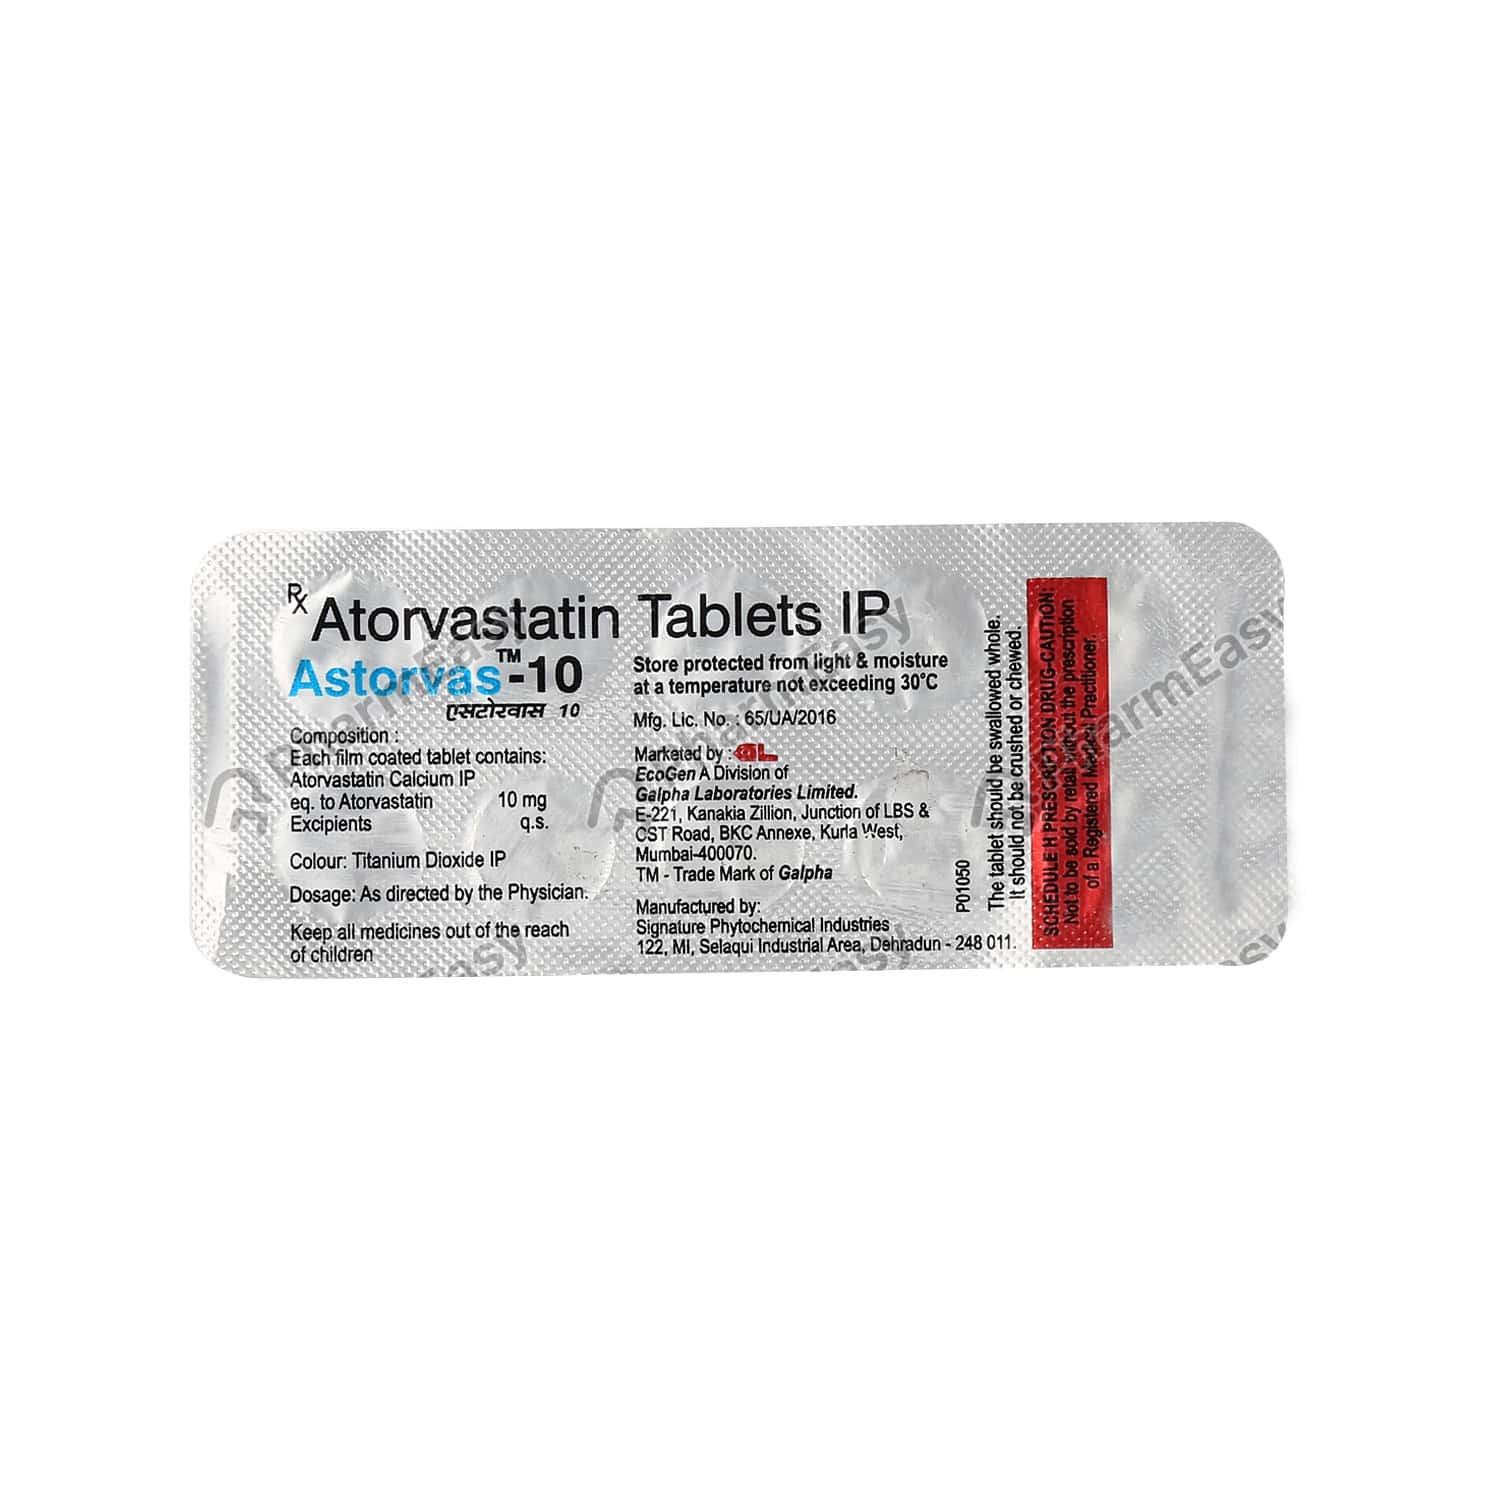 Astorvas 10mg Tablet